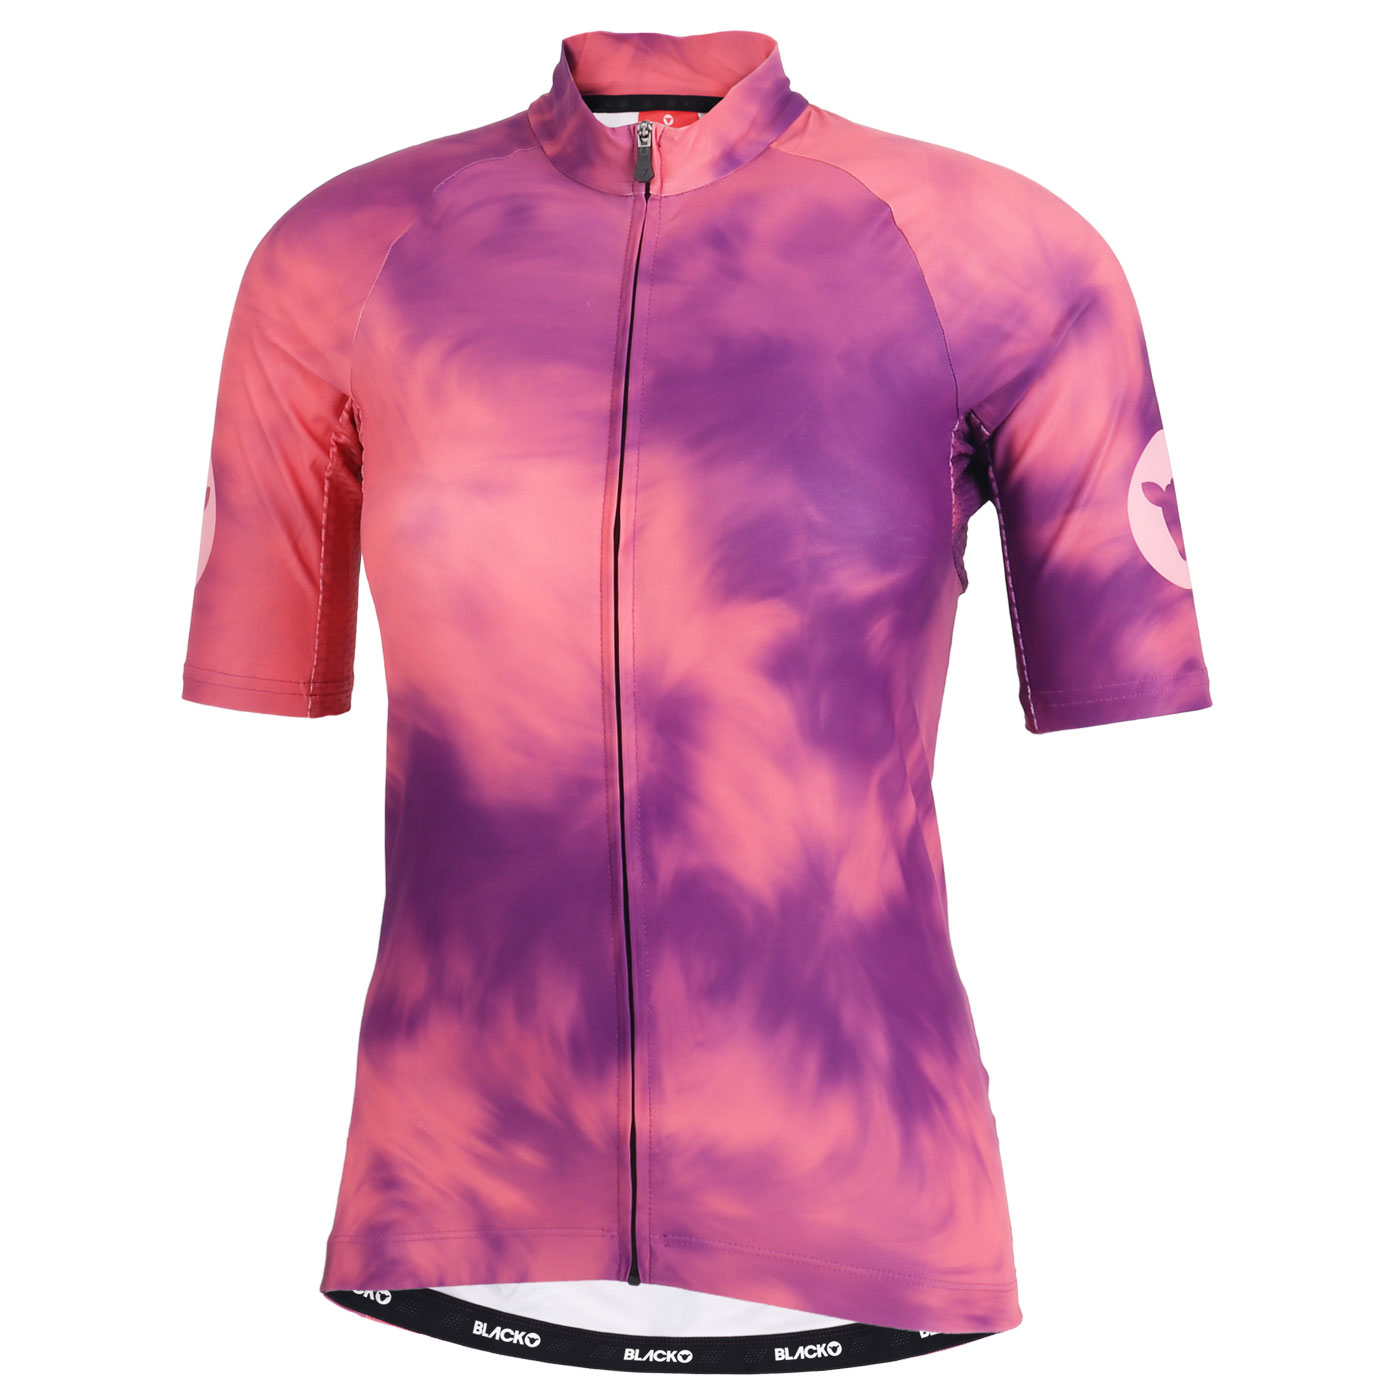 Black Sheep Cycling Essentials TOUR Maillot para Mujer - coral/purple acid